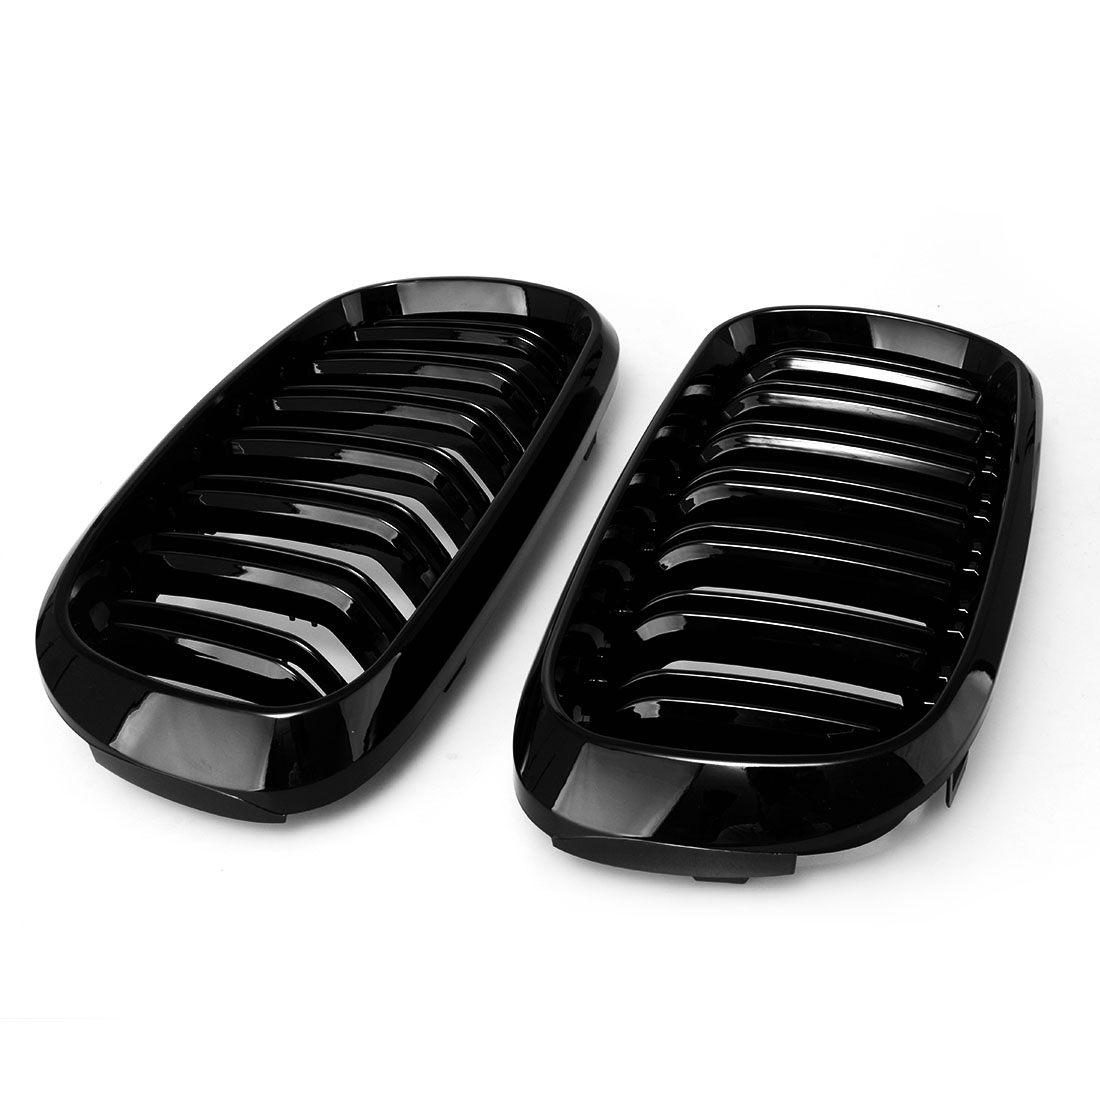 Grille For BMW X5 F15 gloss black Car Front Center Wide Kidney Double slat Grill Racing Grill Car styling